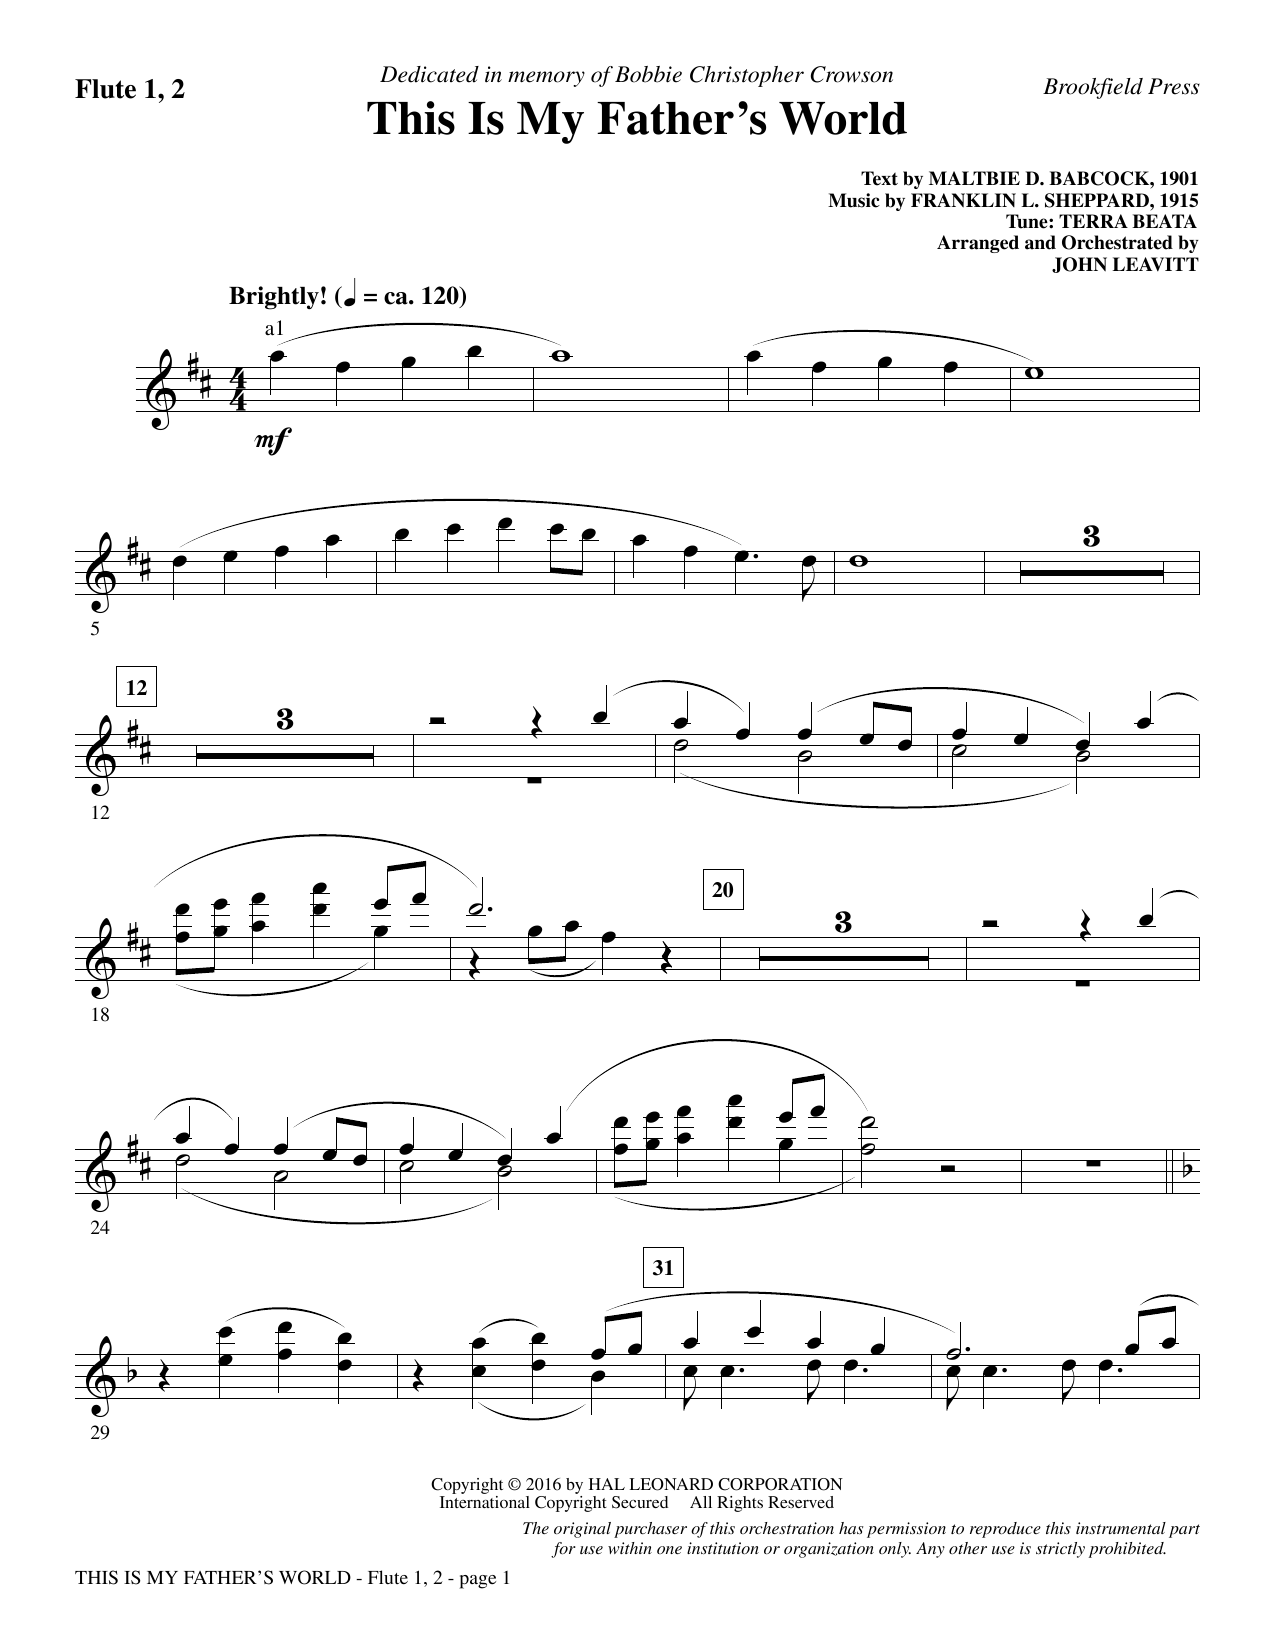 This Is My Father's World - Flute 1 & 2 Sheet Music